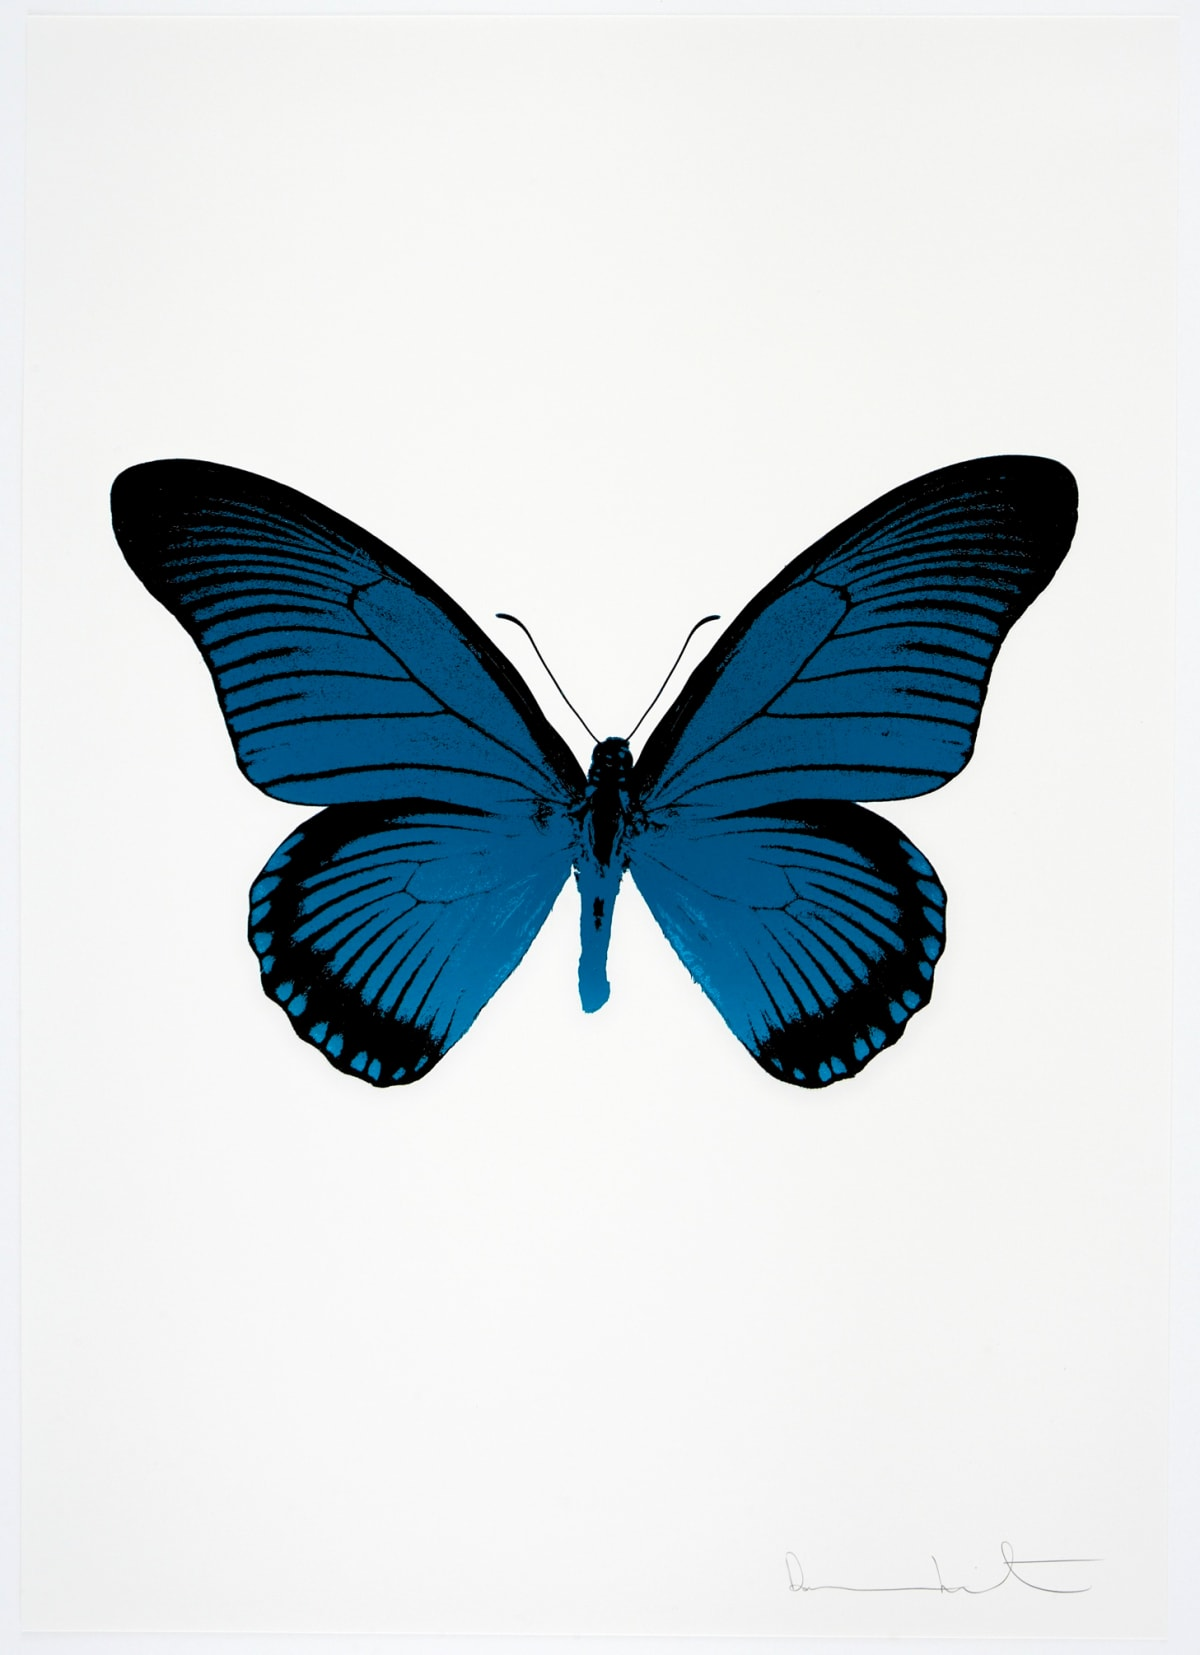 Damien Hirst The Souls IV - Turquoise/Raven Black, 2010 2 colour foil block on 300gsm Arches 88 archival paper. Signed and numbered. Published by Paul Stolper and Other Criteria 72 x 51cm OC7978 / 1418-1 Edition of 15